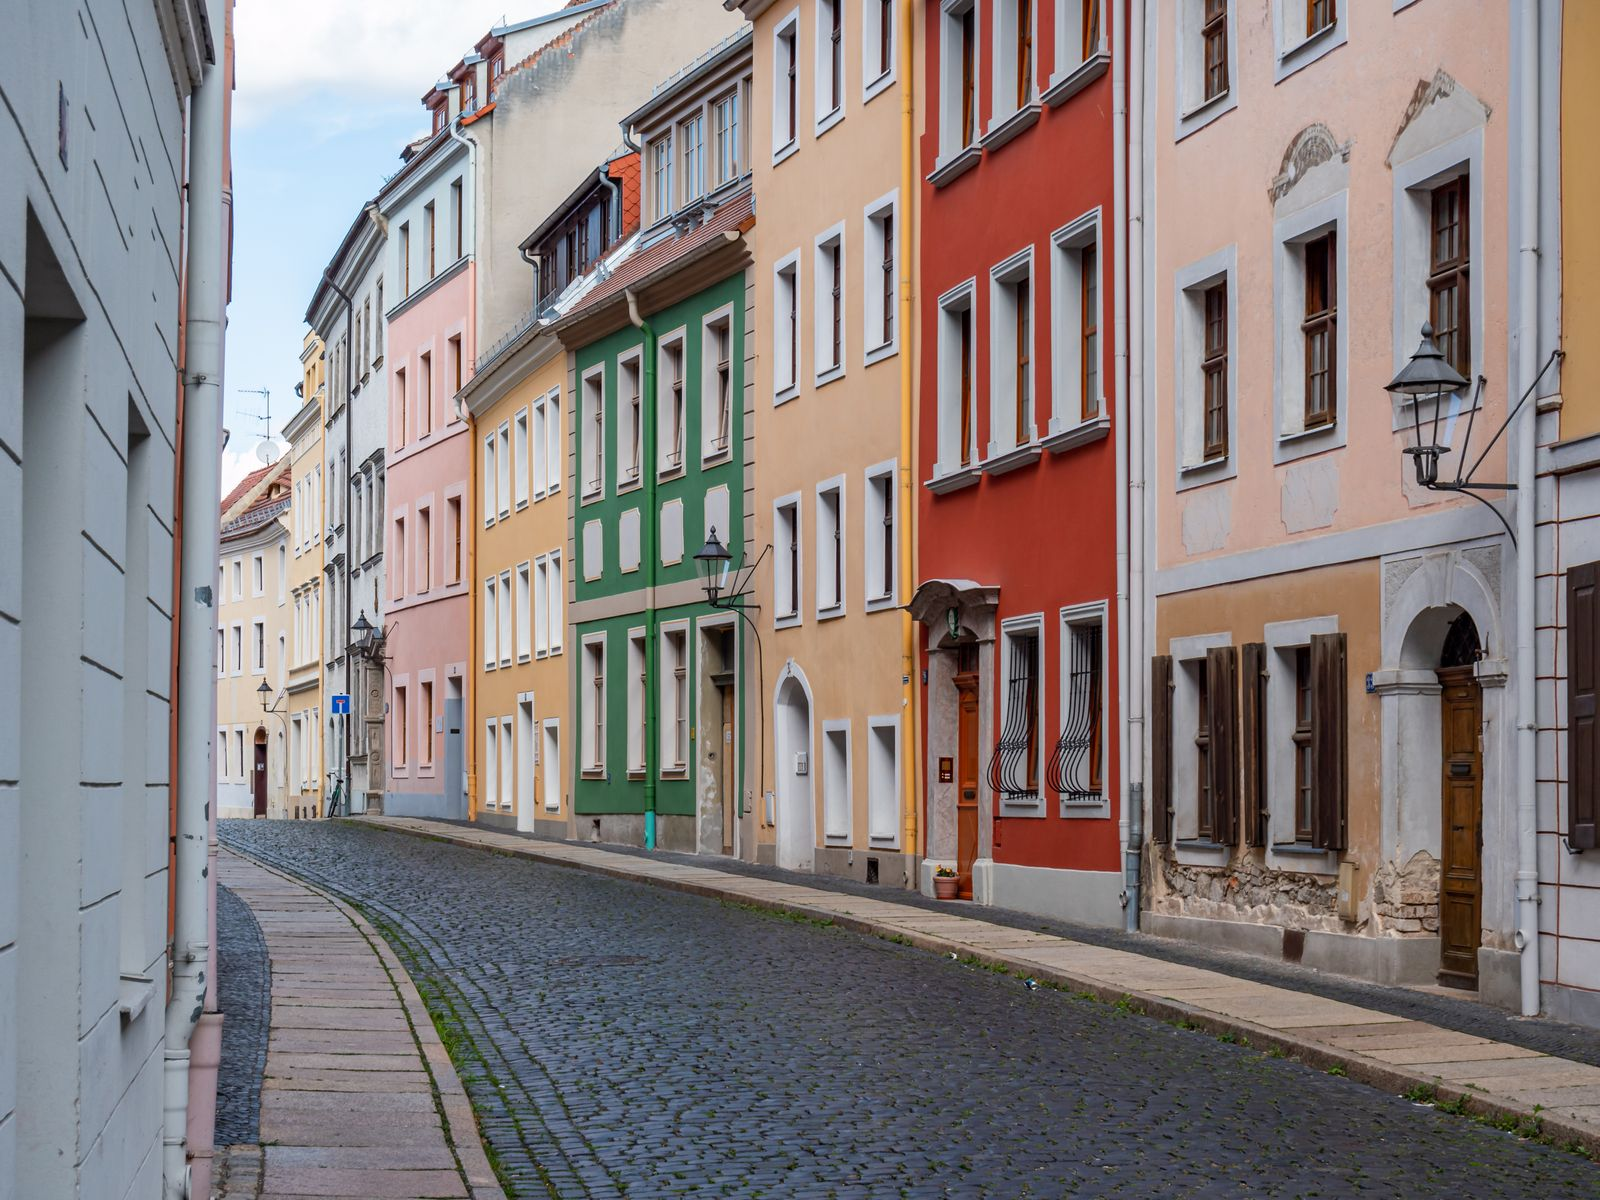 historic alley in Goerlitz, Saxony